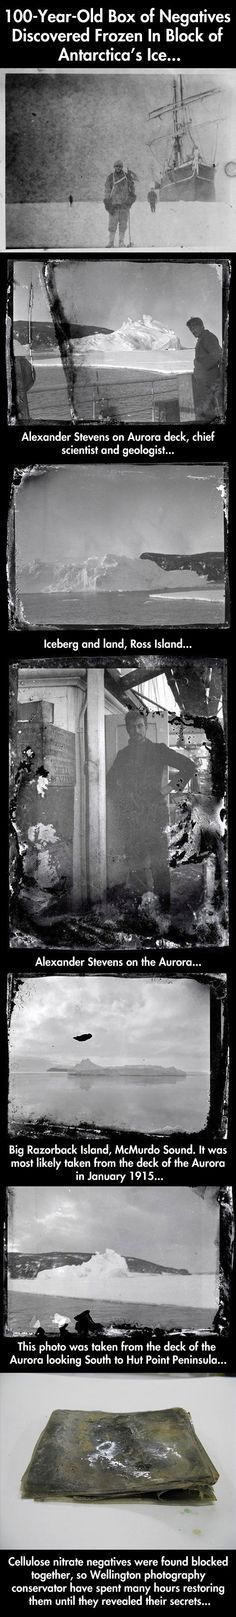 Photos discovered frozen in block of ice…